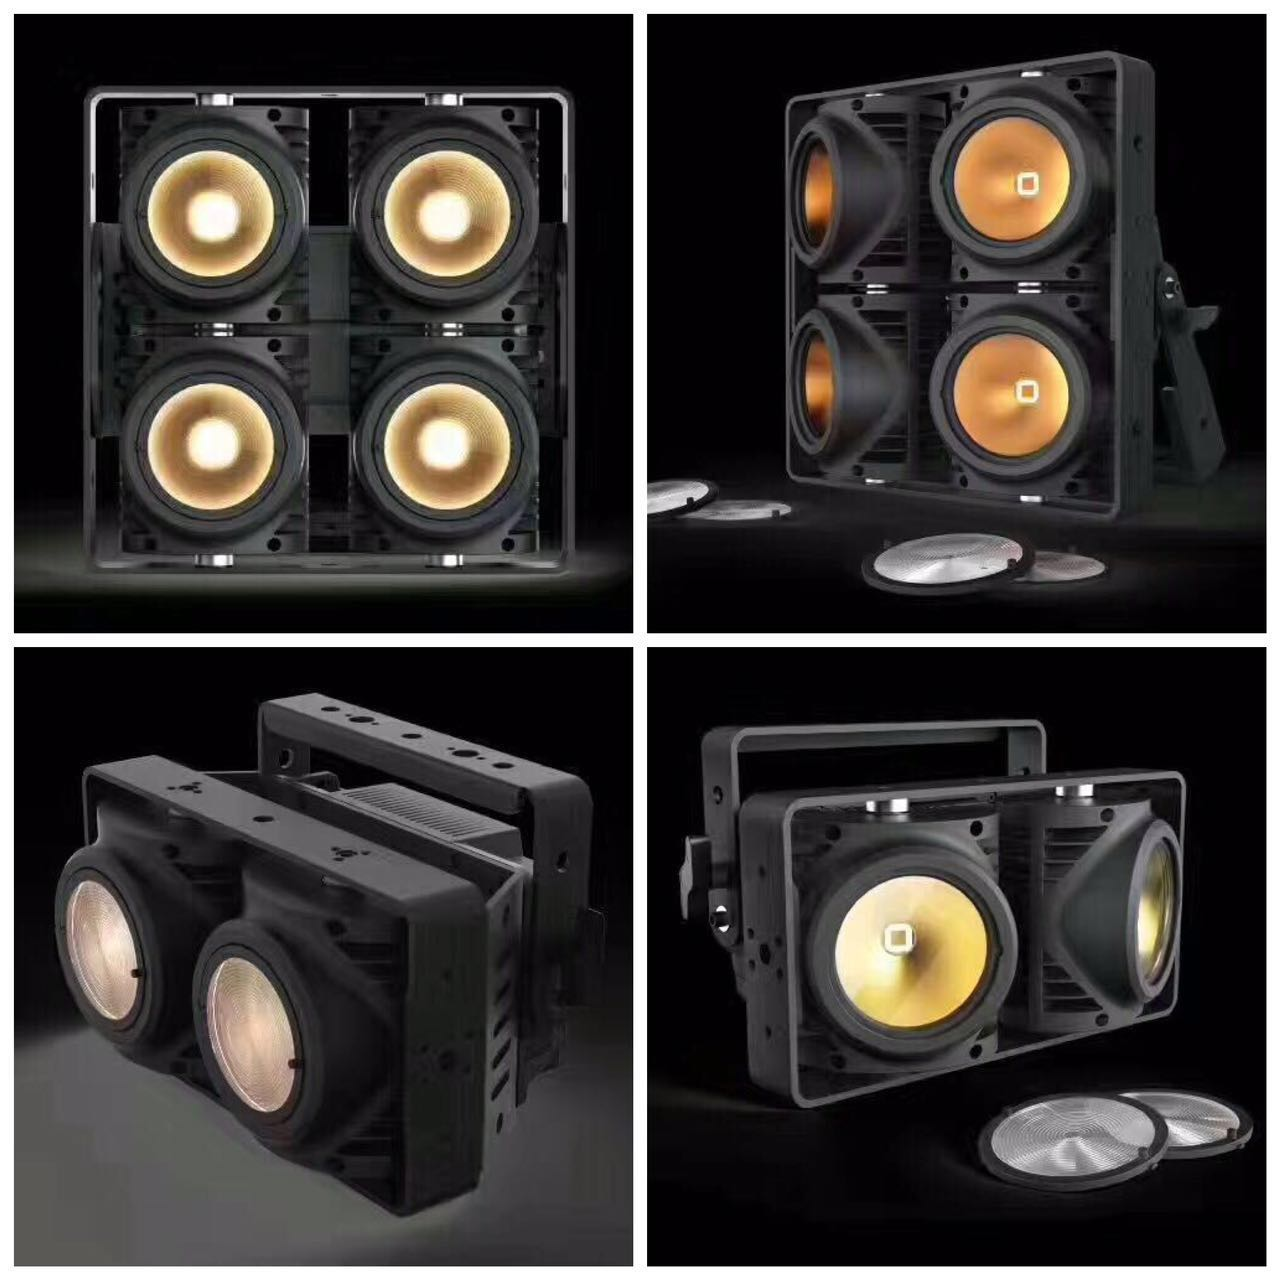 4x100W COB Audience Light Waterproof IP65